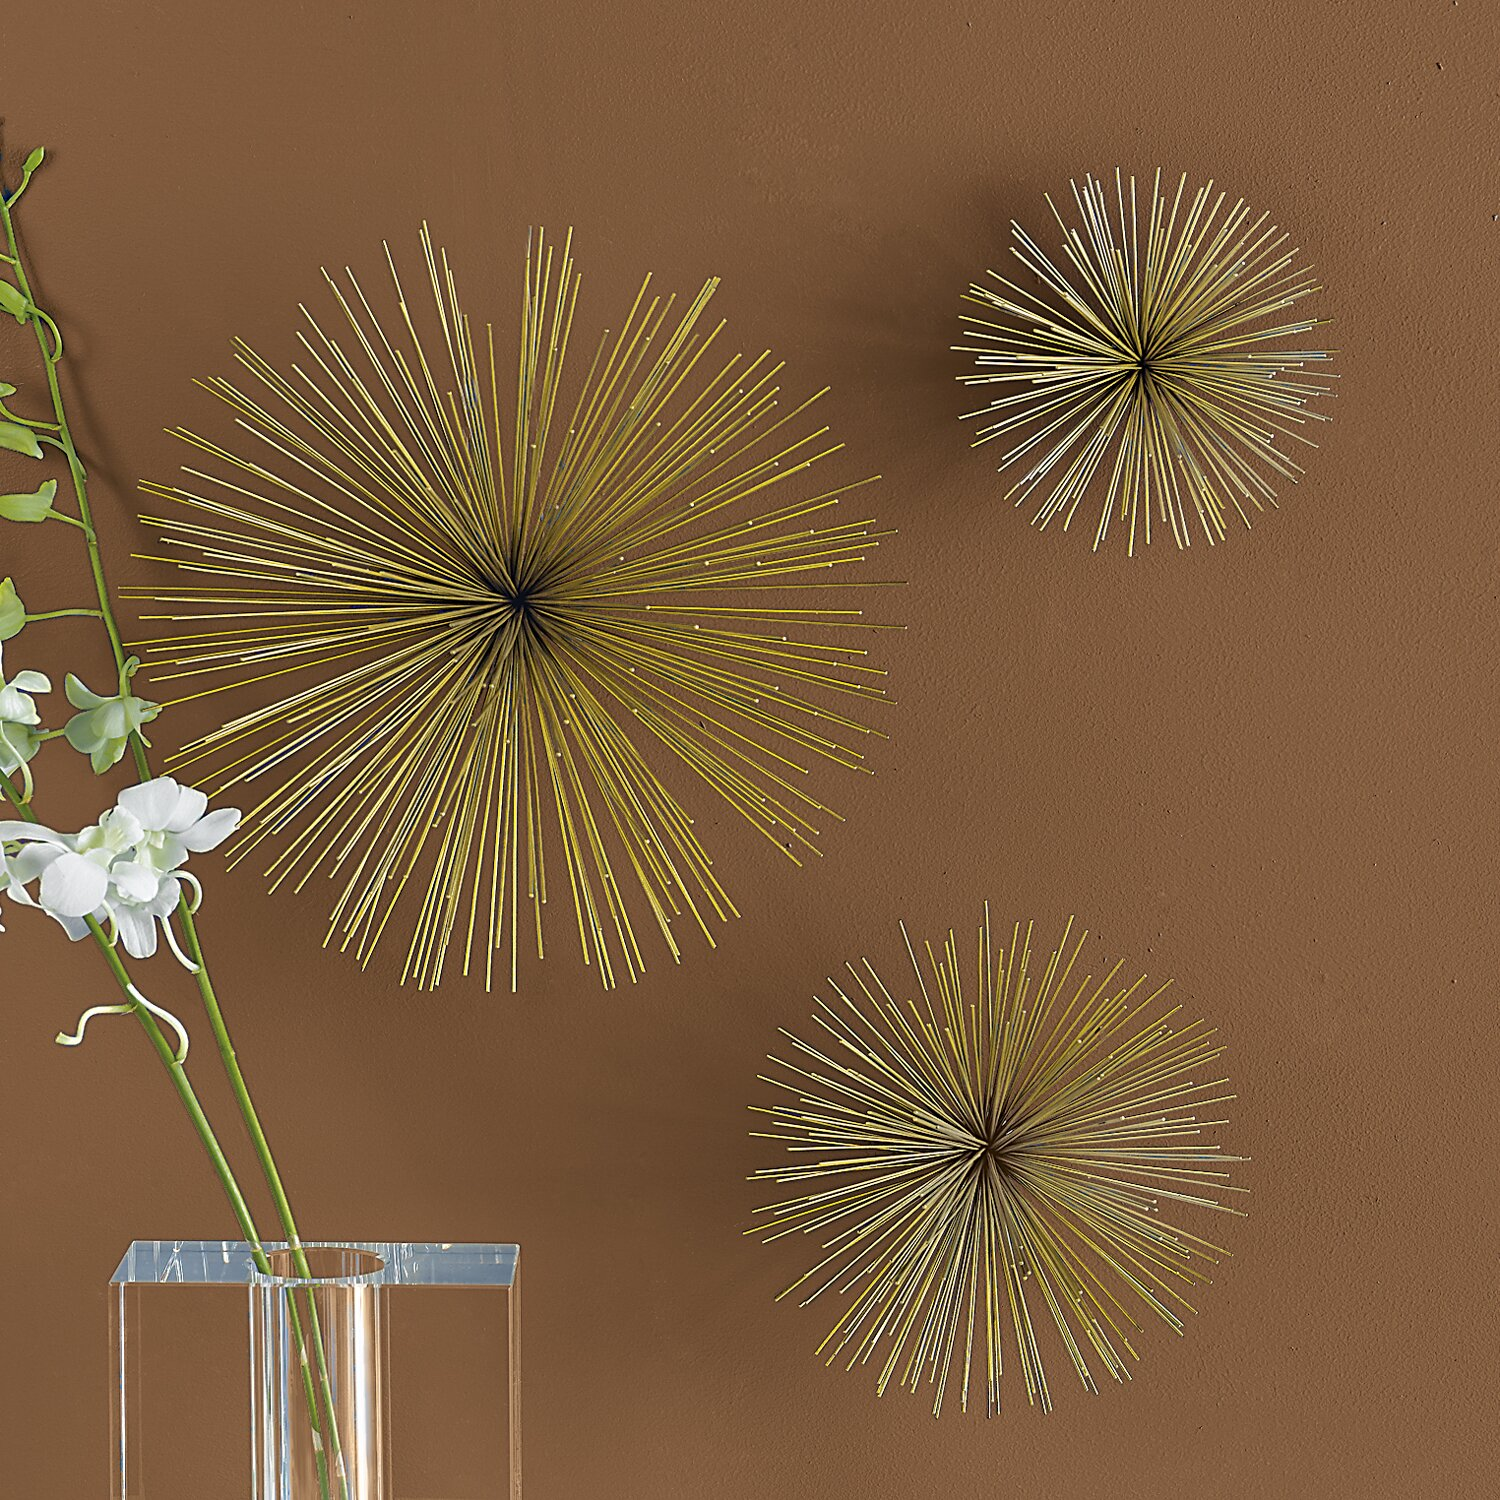 Twos pany Wall Flowers Wall Décor & Reviews